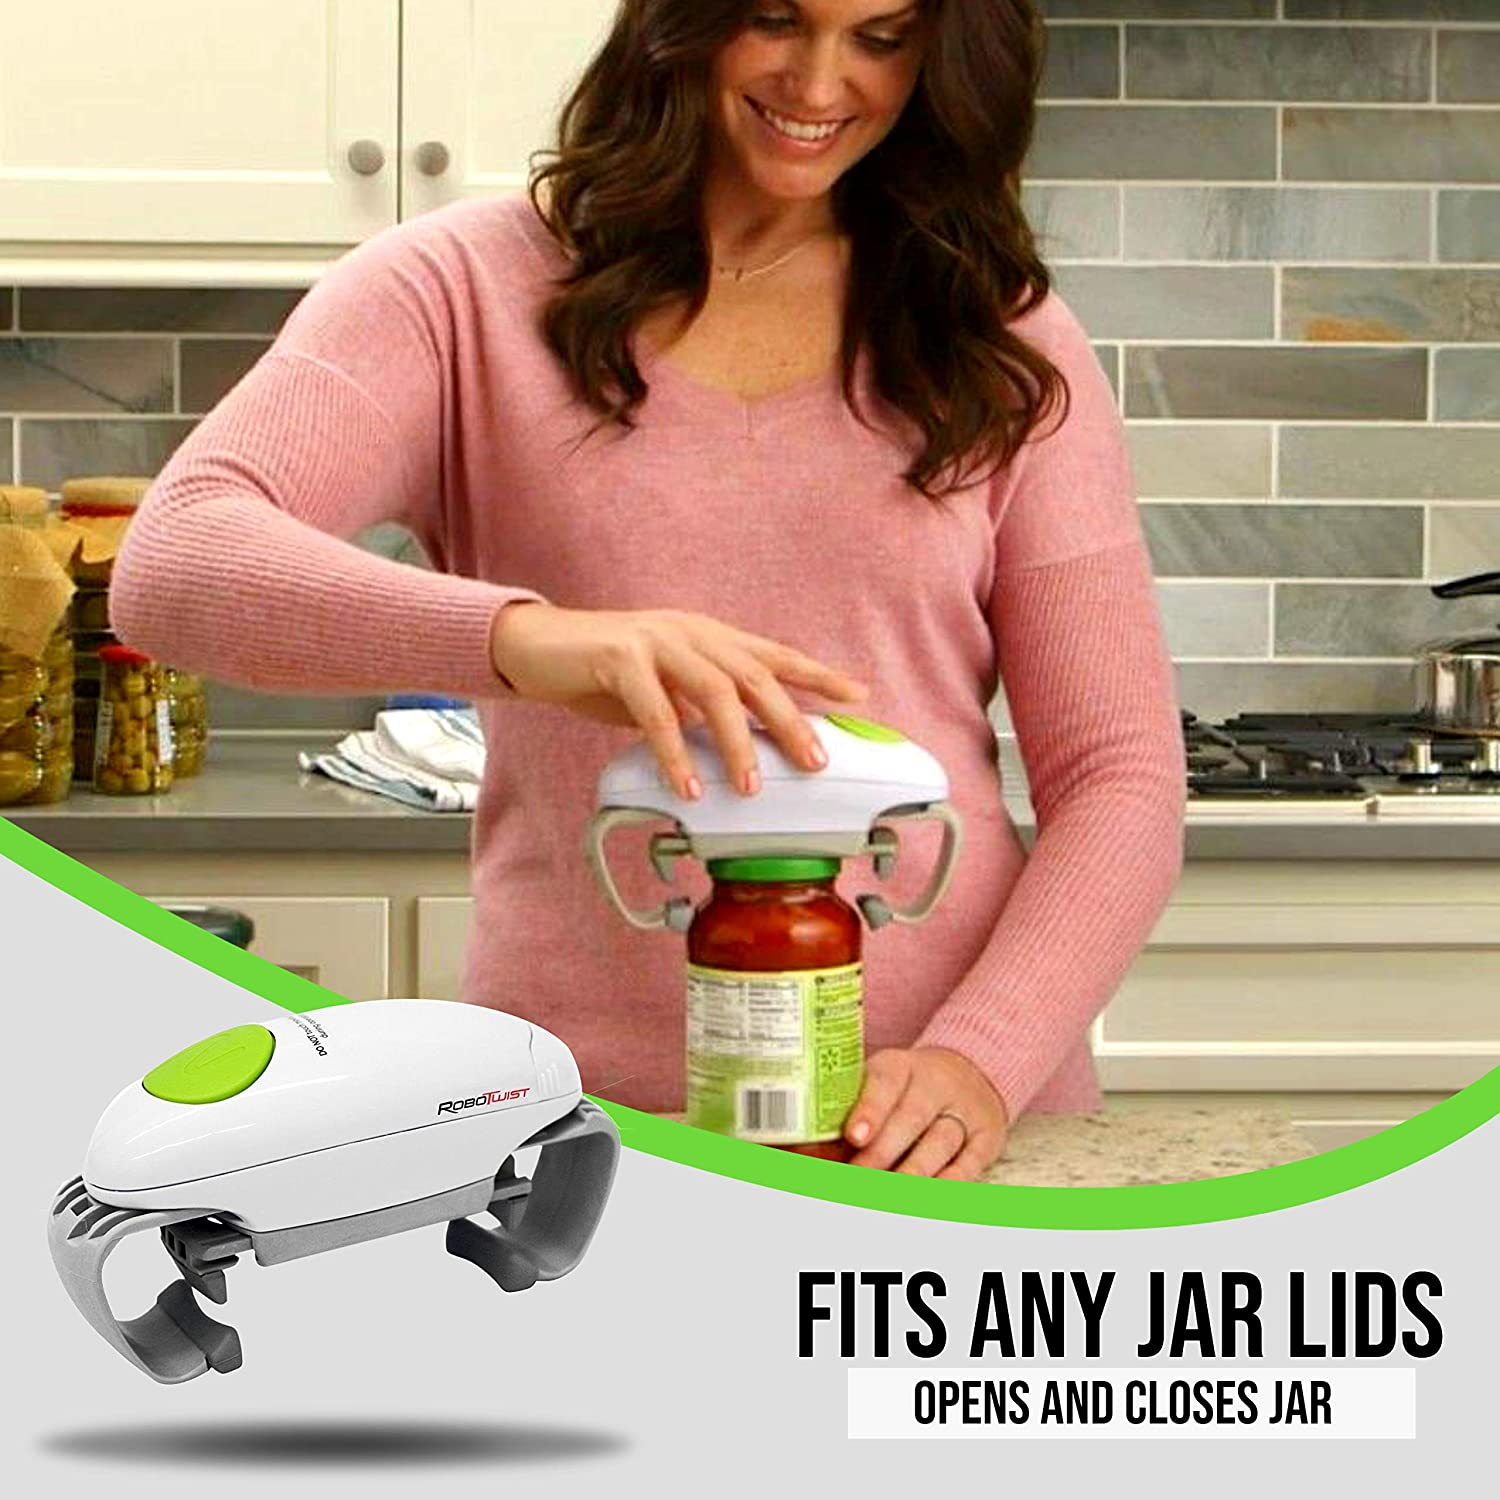 Robotwist Deluxe 7321 Automatic Jar Opener As Seen Higher Torque for Improved Jar Opening Performance On TV